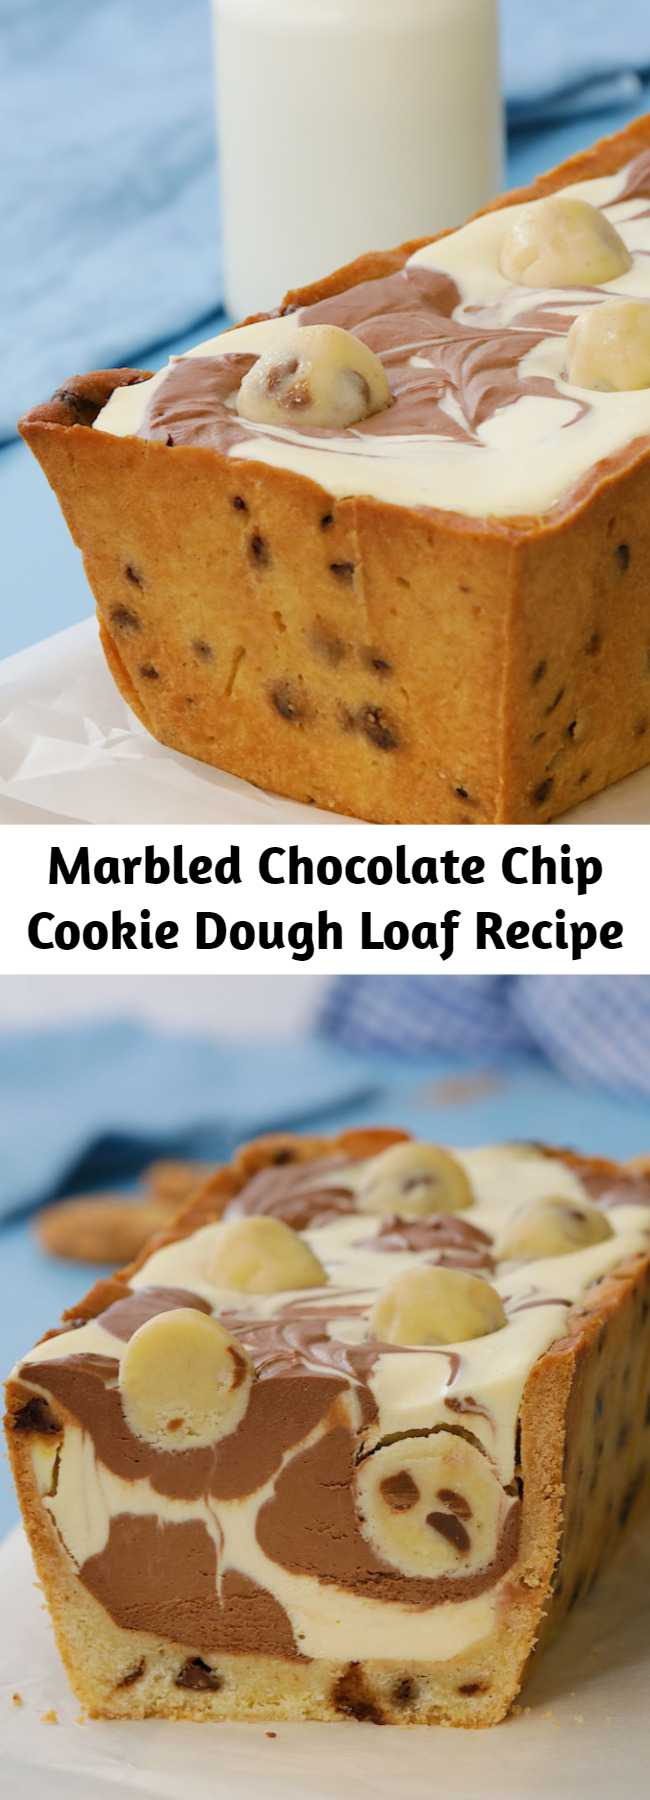 Marbled Chocolate Chip Cookie Dough Loaf Recipe - This chocolate chip cookie dough loaf is simply marbelous!